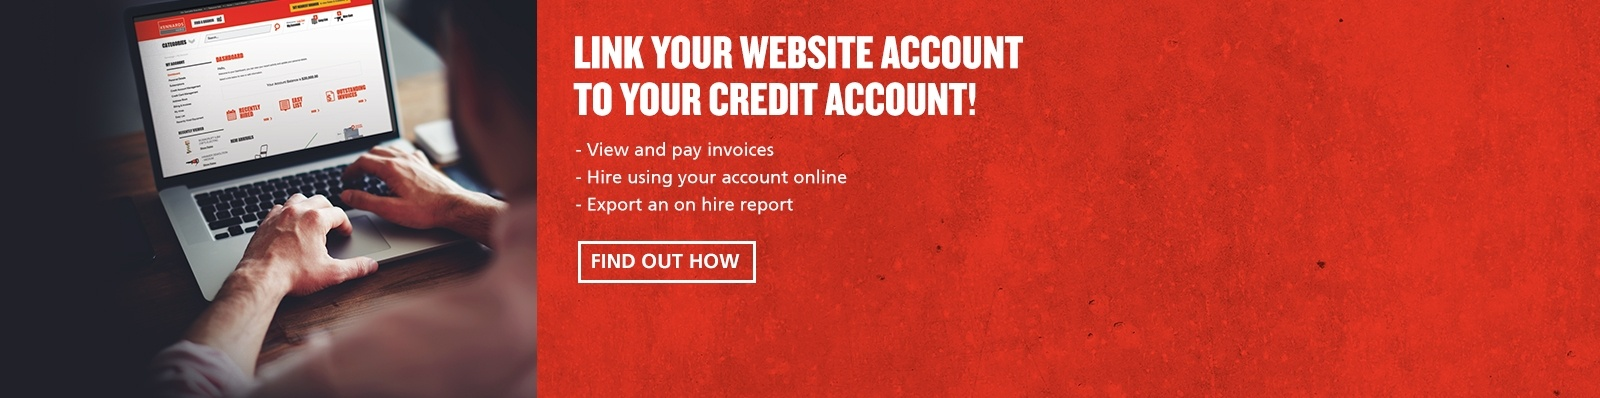 Link Your Web Account to Your Credit Account